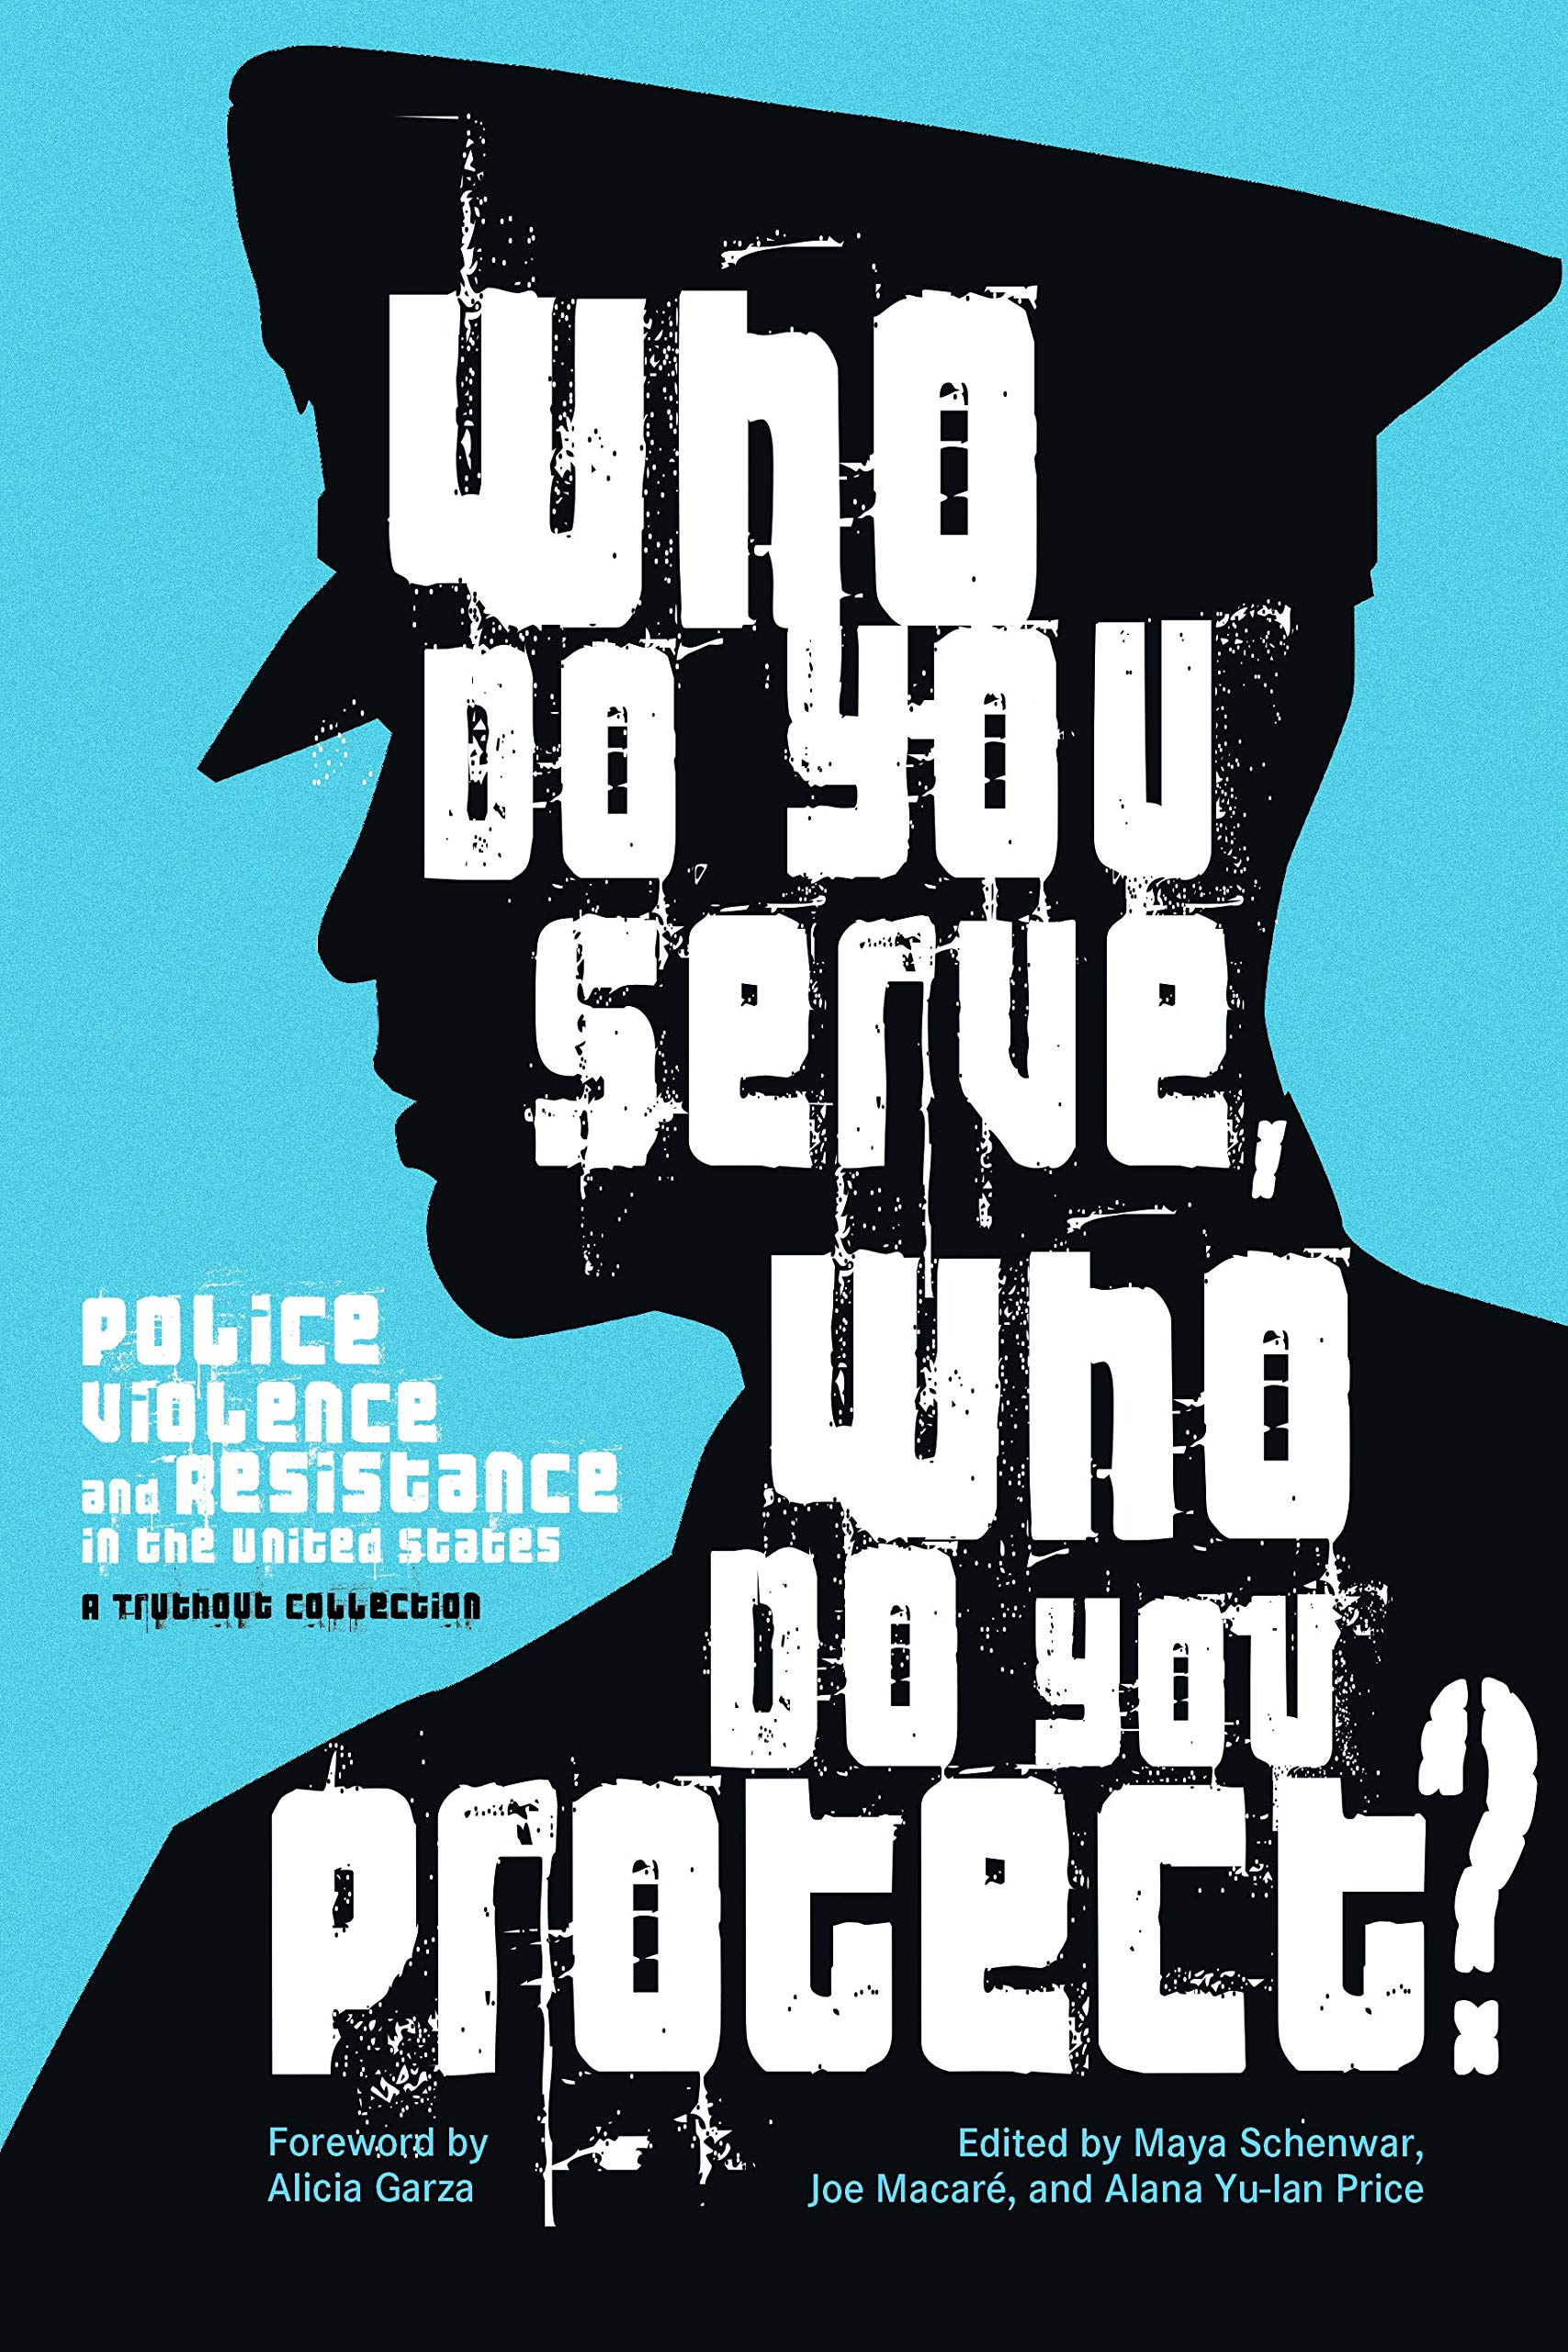 Who Do You Serve, Who Do You Protect?: Police Violence and Resistance within the United States